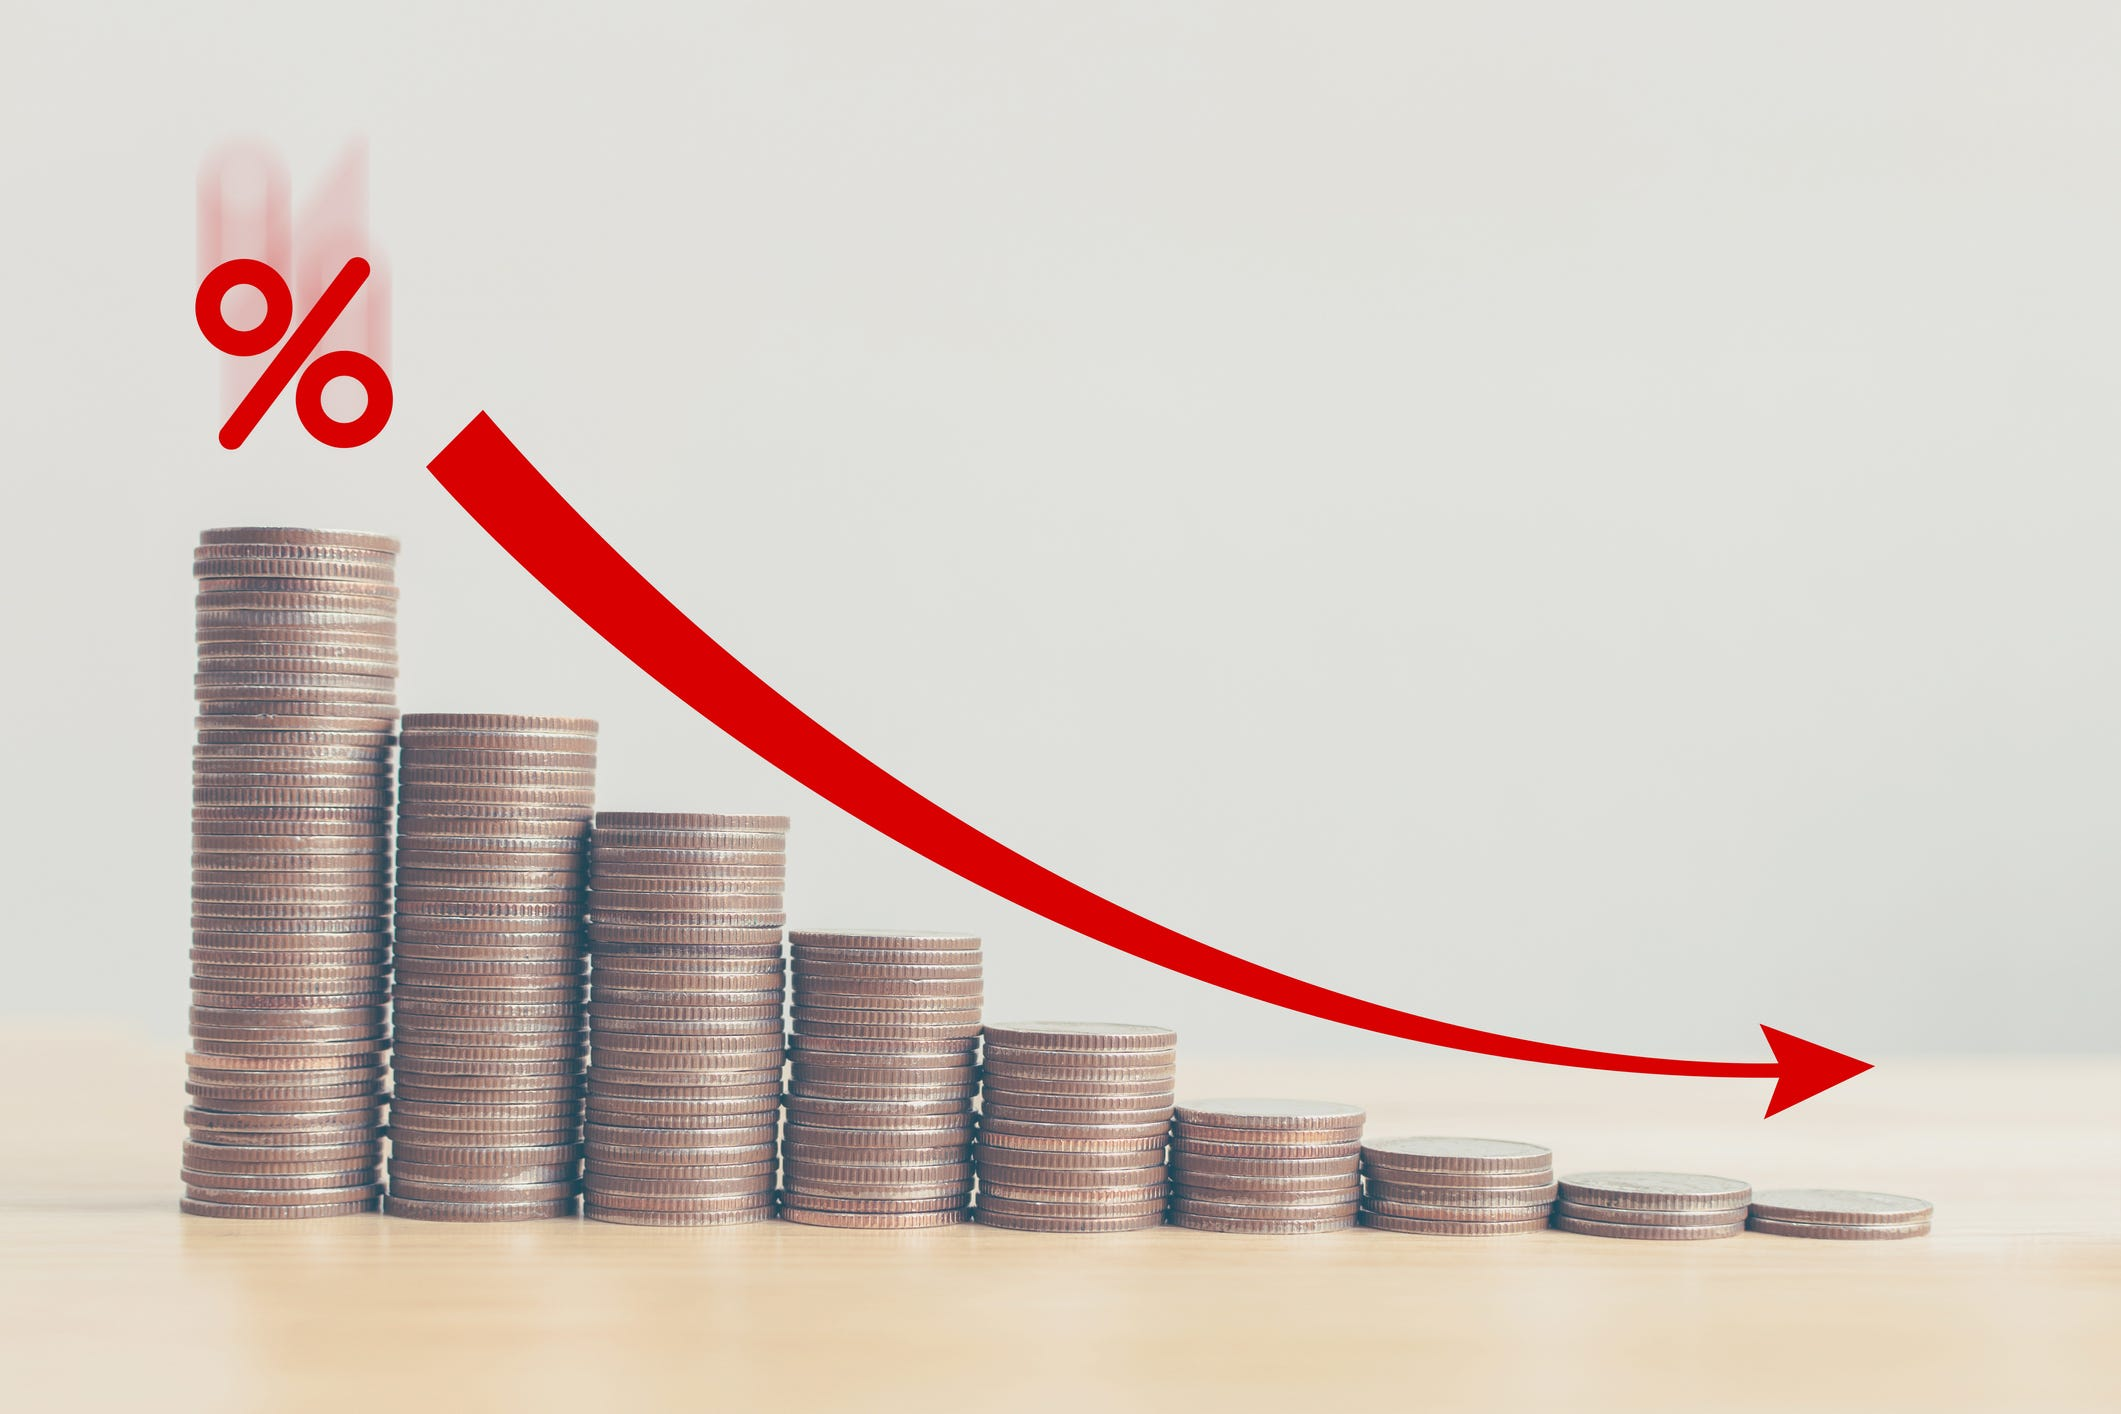 Where Can I Get A Loan With Low-Interest Rate?